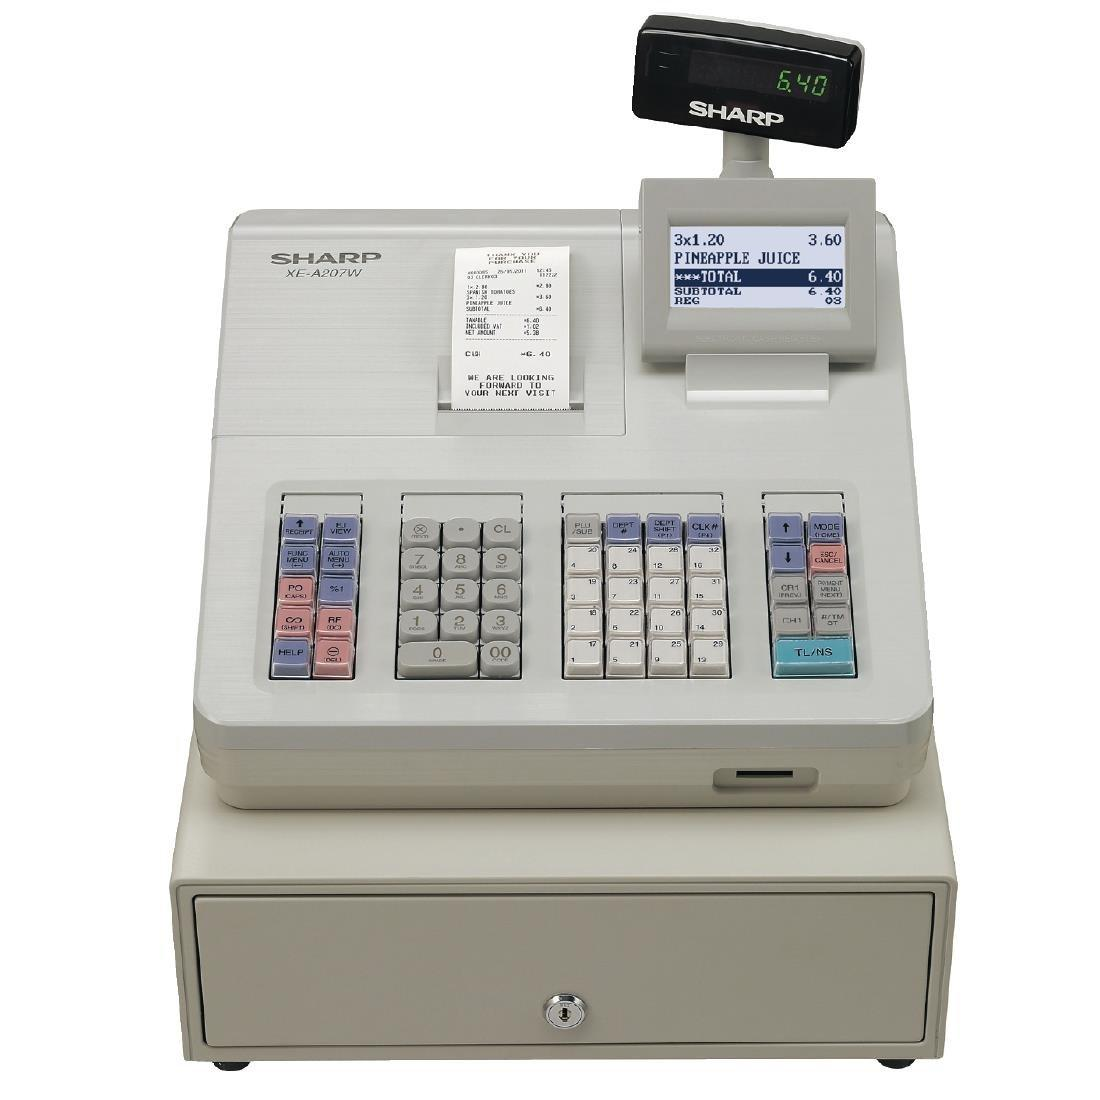 CE057 - Sharp Cash Register